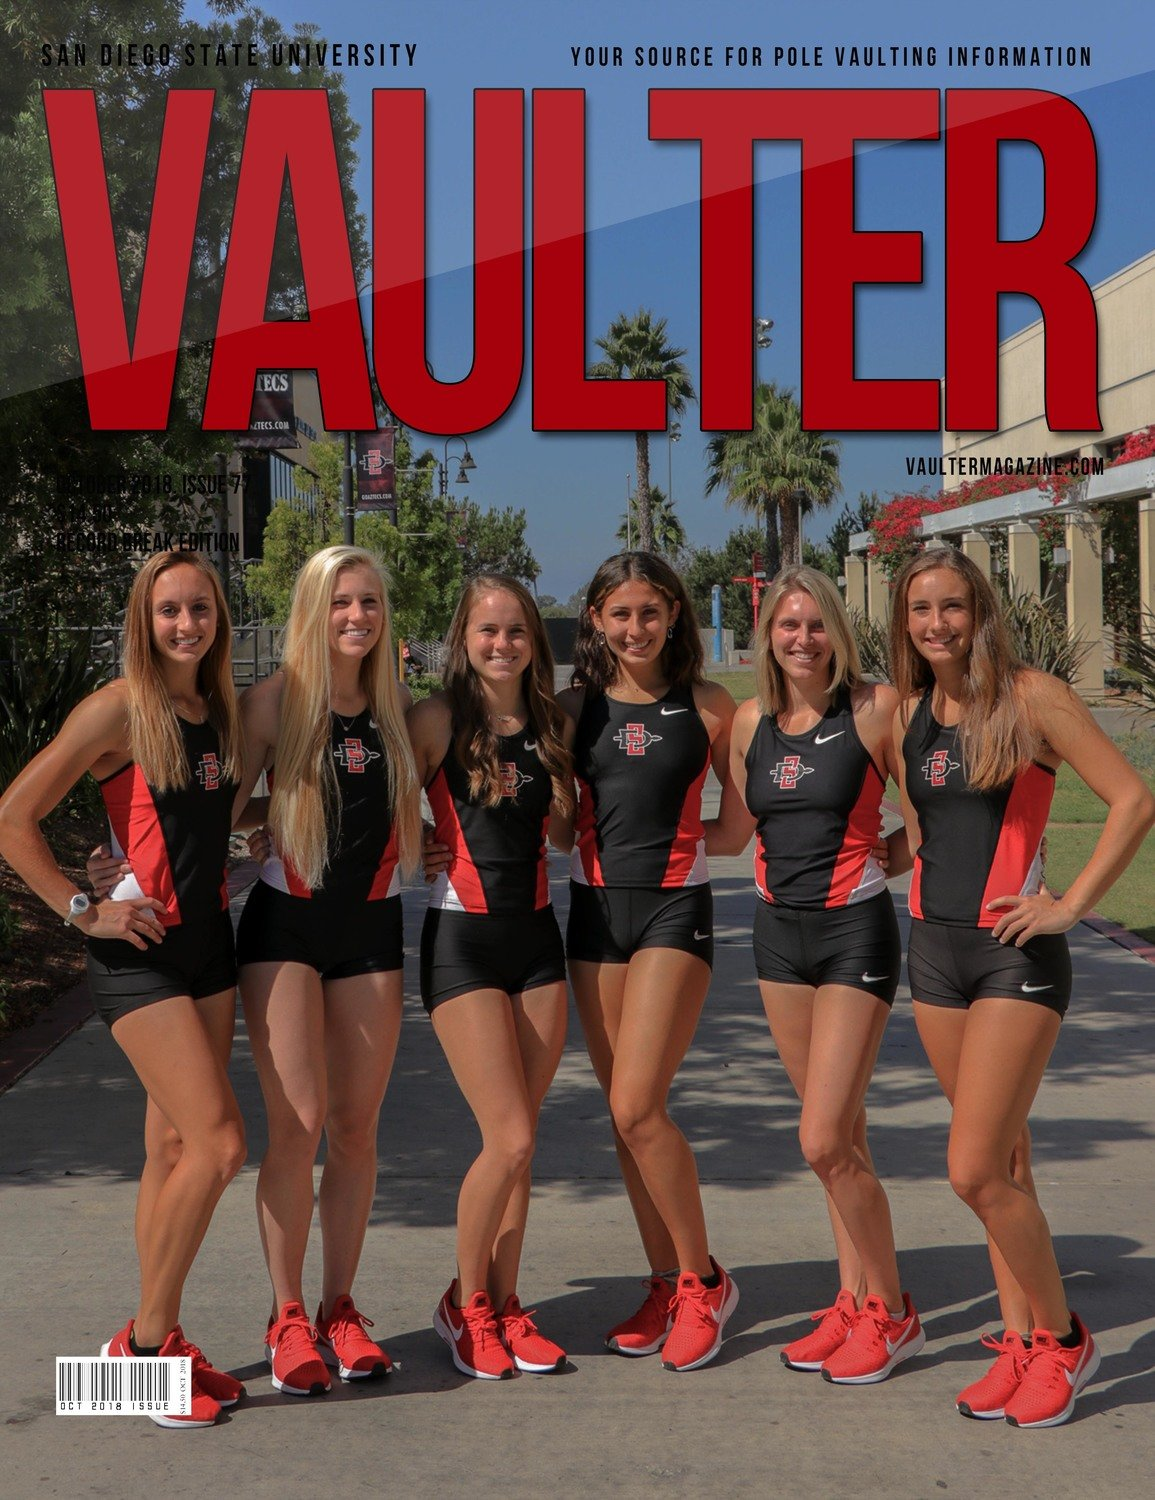 October 2018 San Diego State University Issue of Vaulter Magazine Cover Poster for Vaulter Magazine